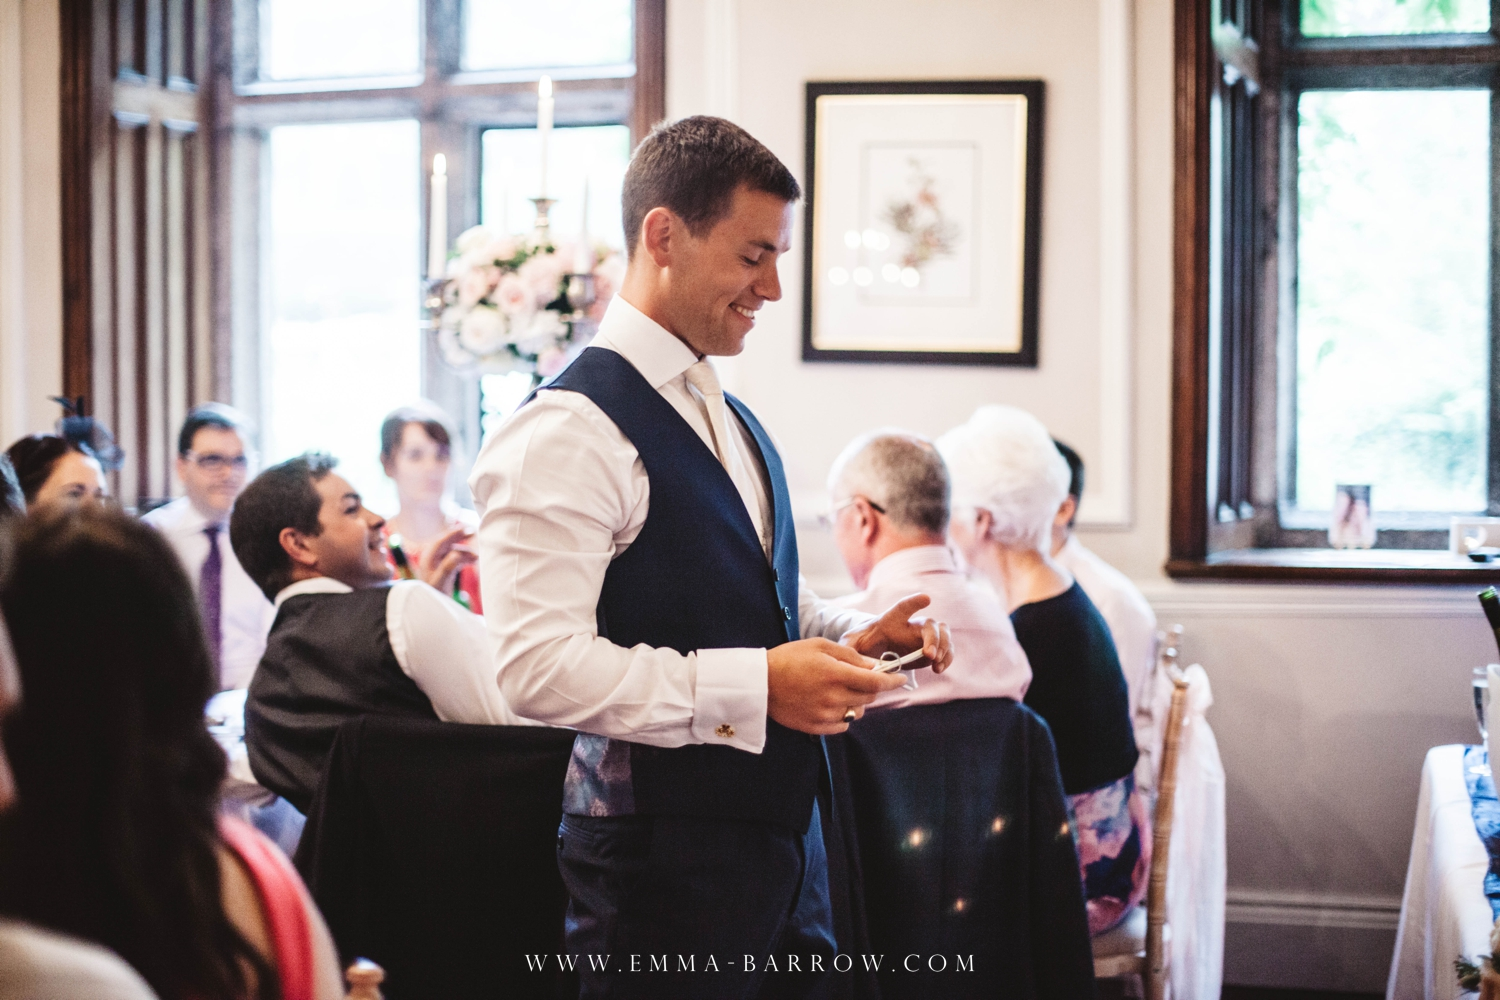 It can really help when speakers move out of the bridal table, it gives me more access and also the guests at the back can see and hear better!